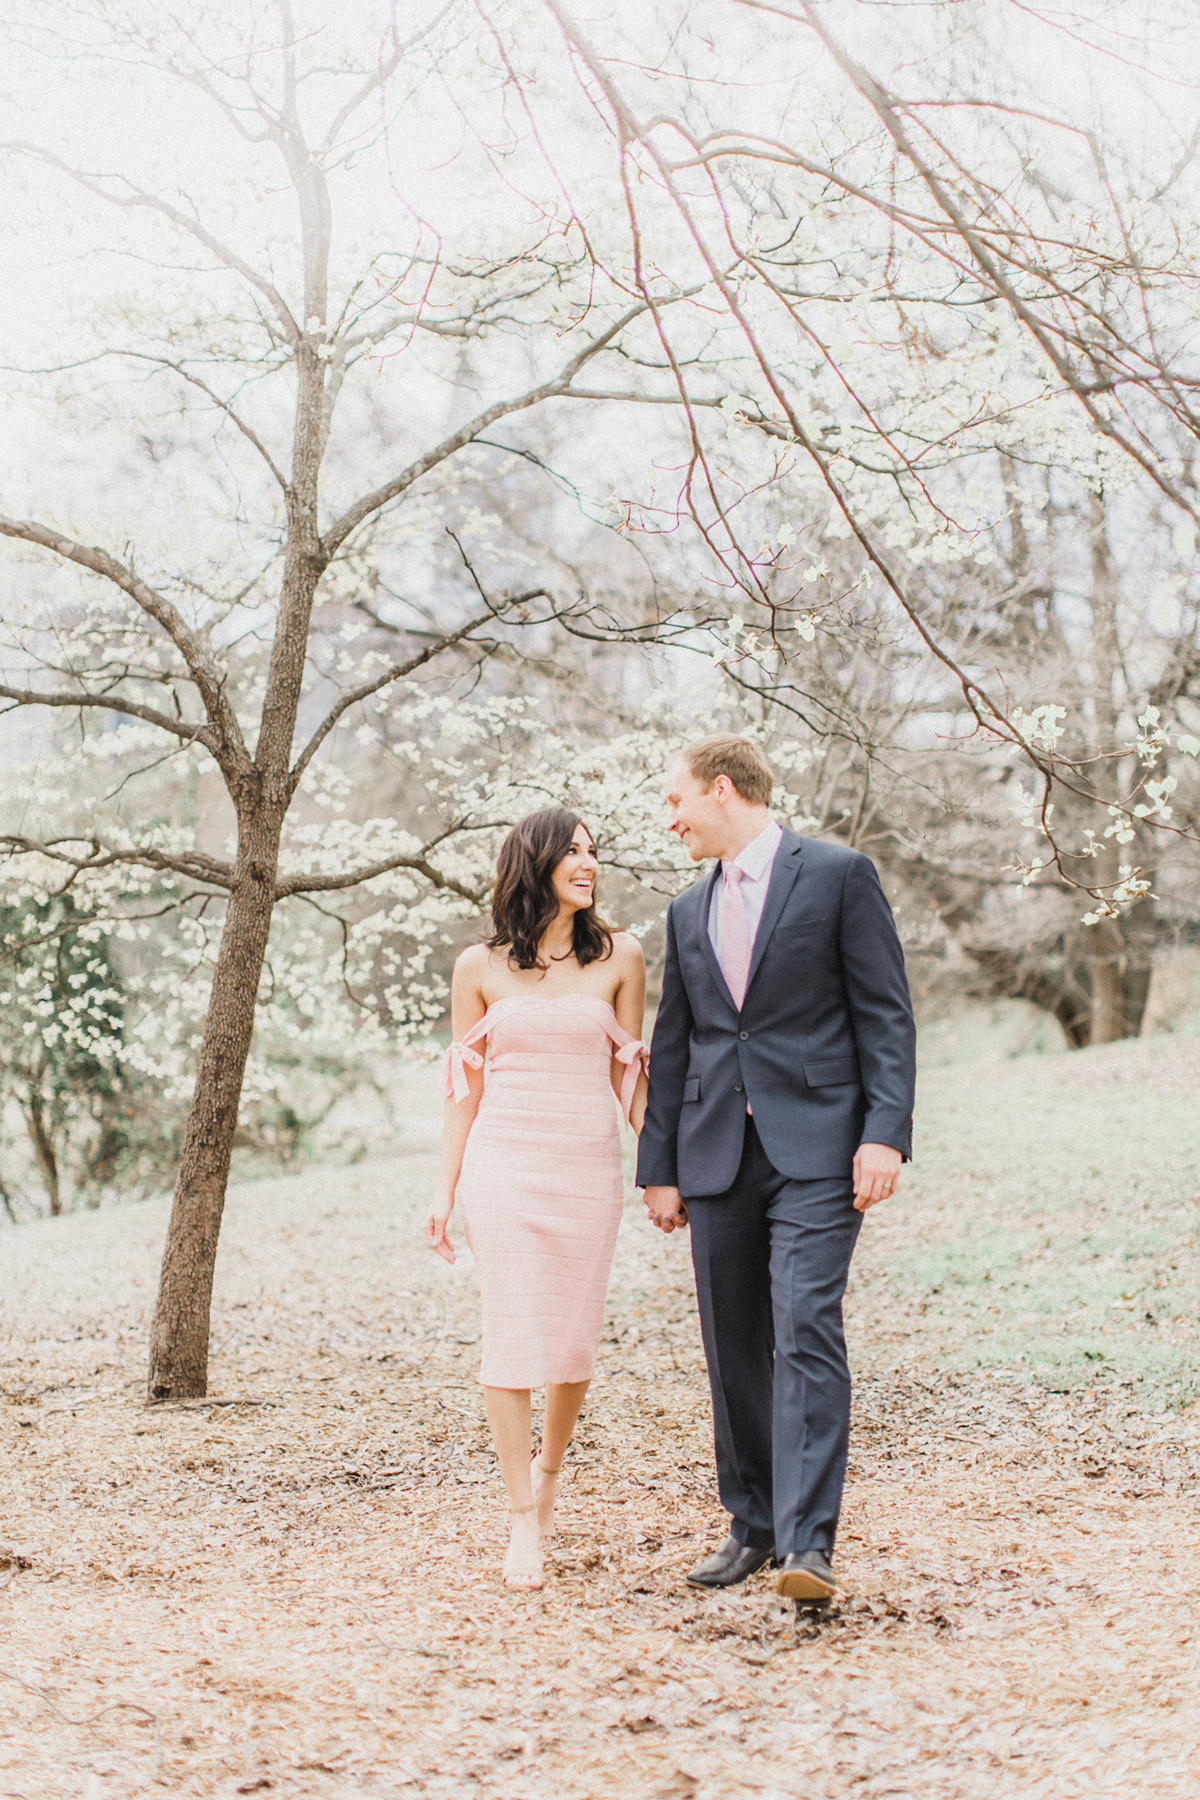 What to Wear for Valentine's Day | Pink Dress | Couple in Love | Eternal Ivory